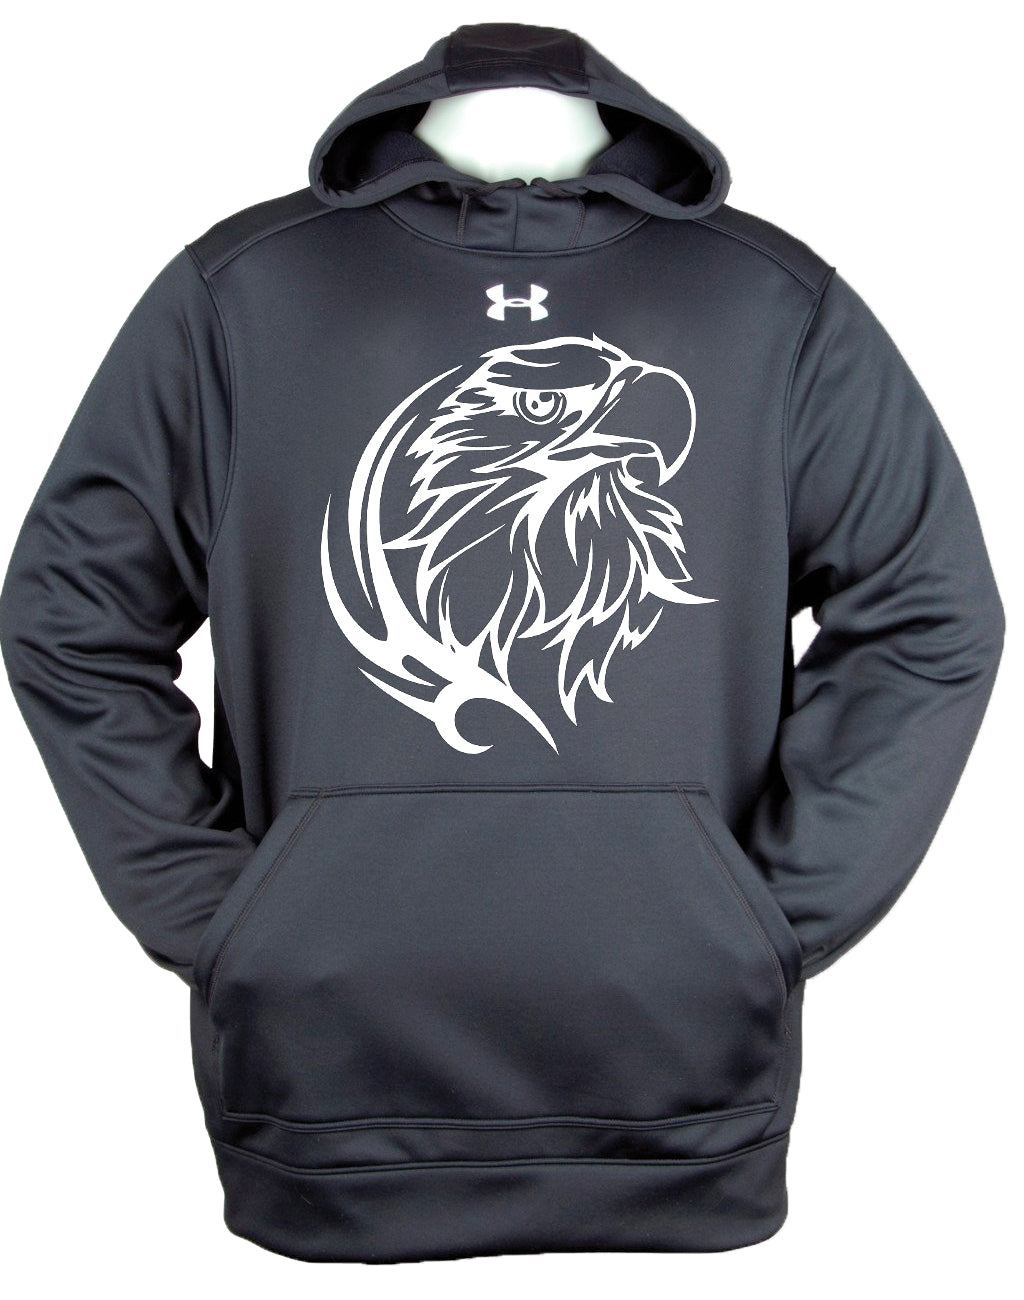 Under Armour Printed Tribal Eagle Hoody